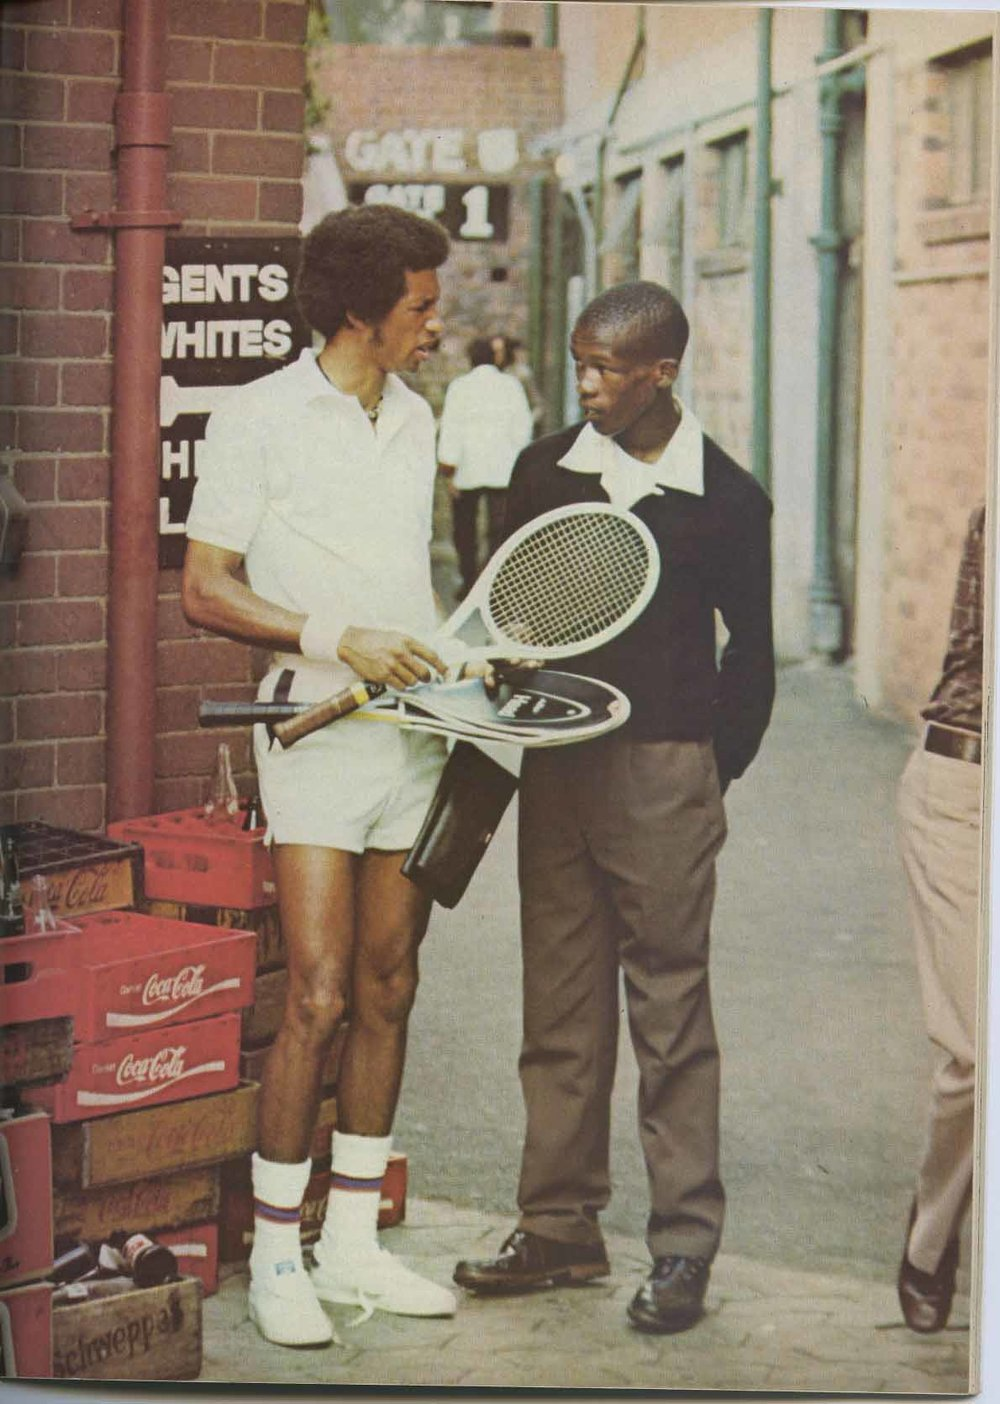 6173_P_JeanneAshe_With Arthur in South Africa World Tennis Magazine Feb 1974.jpg